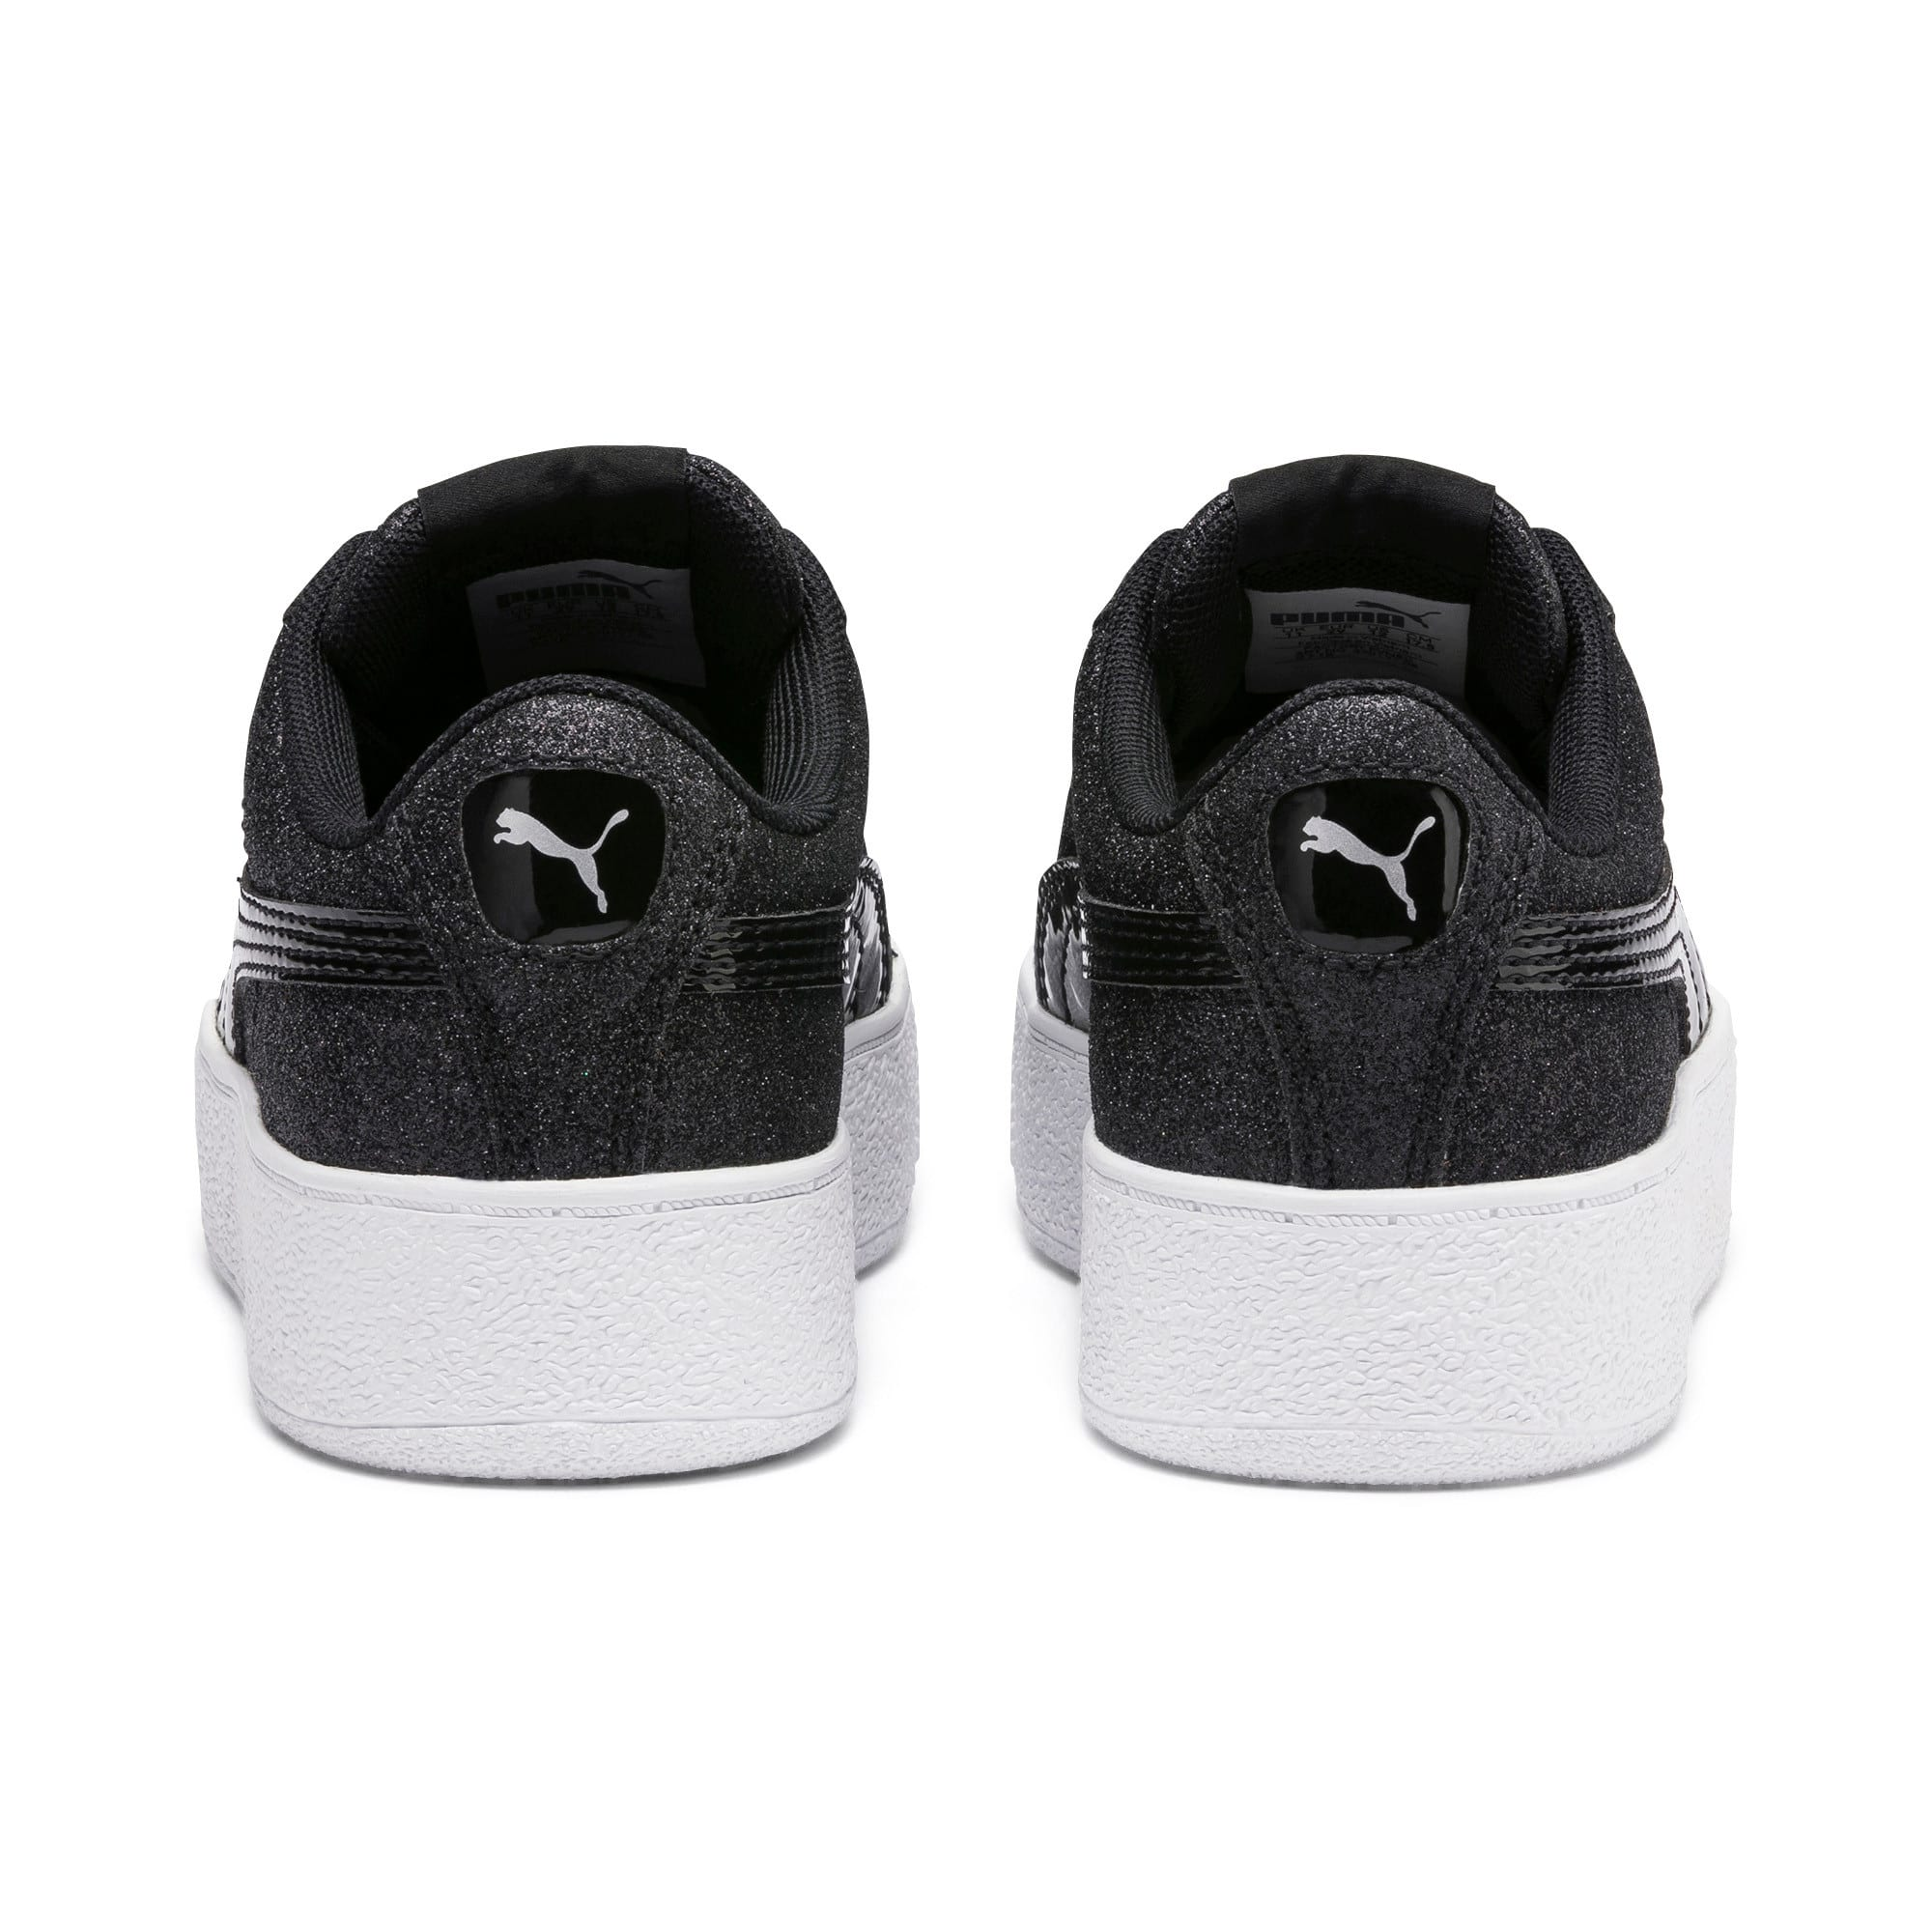 Thumbnail 3 of Basket Vikky Platform Glitz pour fille, Puma Black-Puma Black, medium